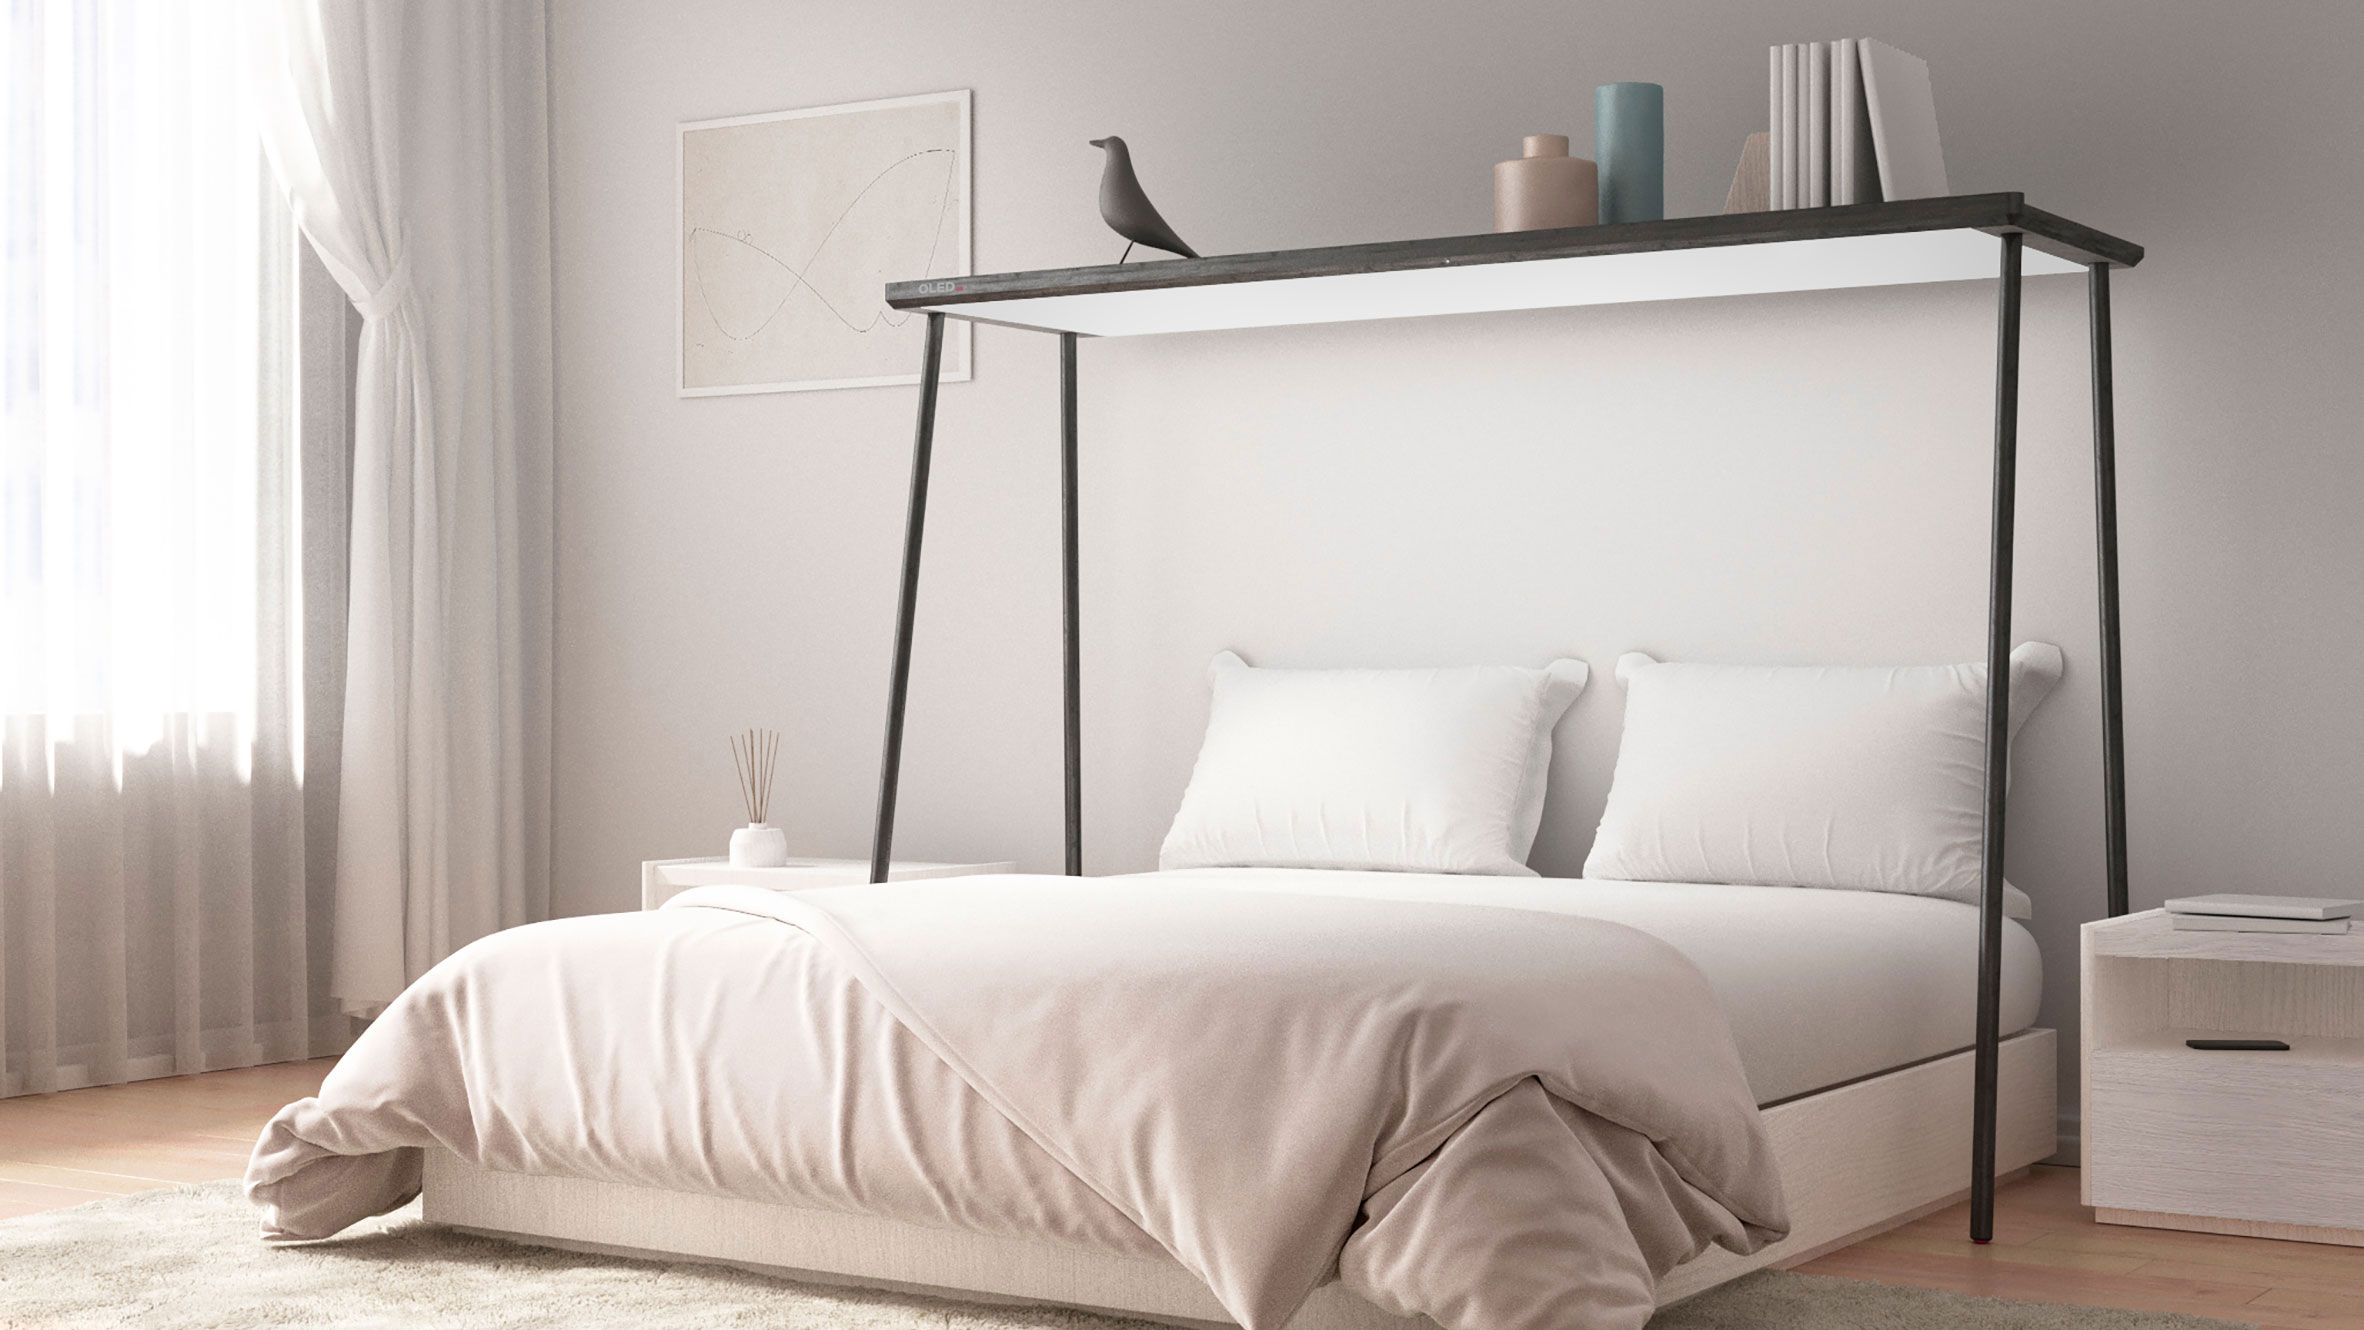 OLED TV panel hung above bed for laid-back viewing